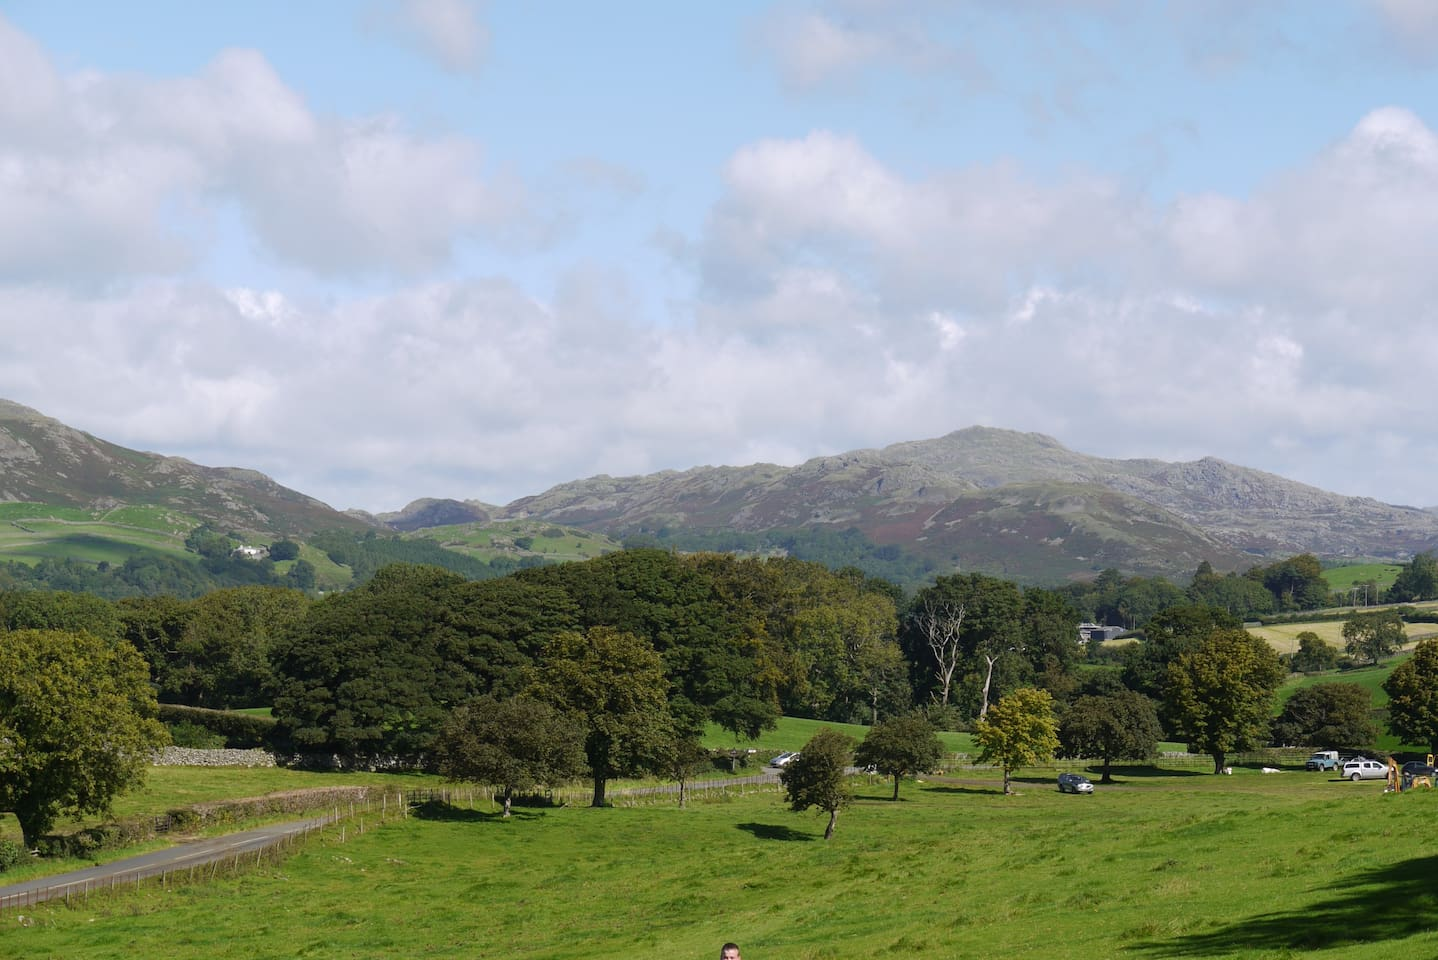 Coniston 'Old Man' and fells, seen from behind home